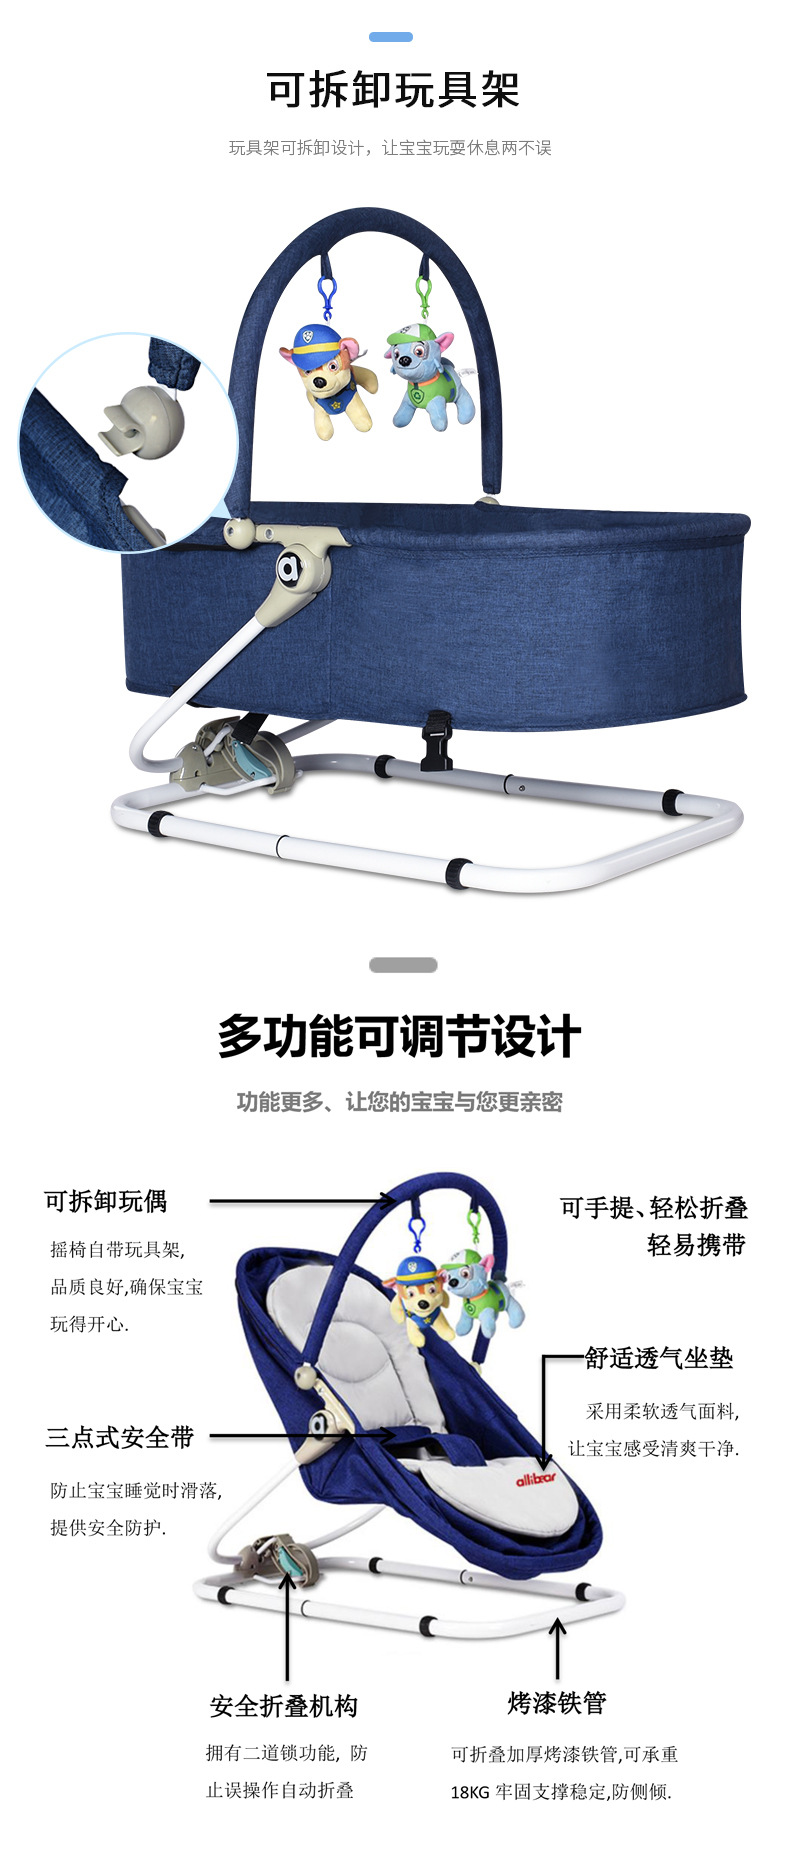 H271aec92f5b9498883998aef7b3438a0E Baby Swing Baby Rocking Chair 2 in1 Electric Baby Cradle With Remote Control Cradle Rocking Chair For Newborns Swing Chair